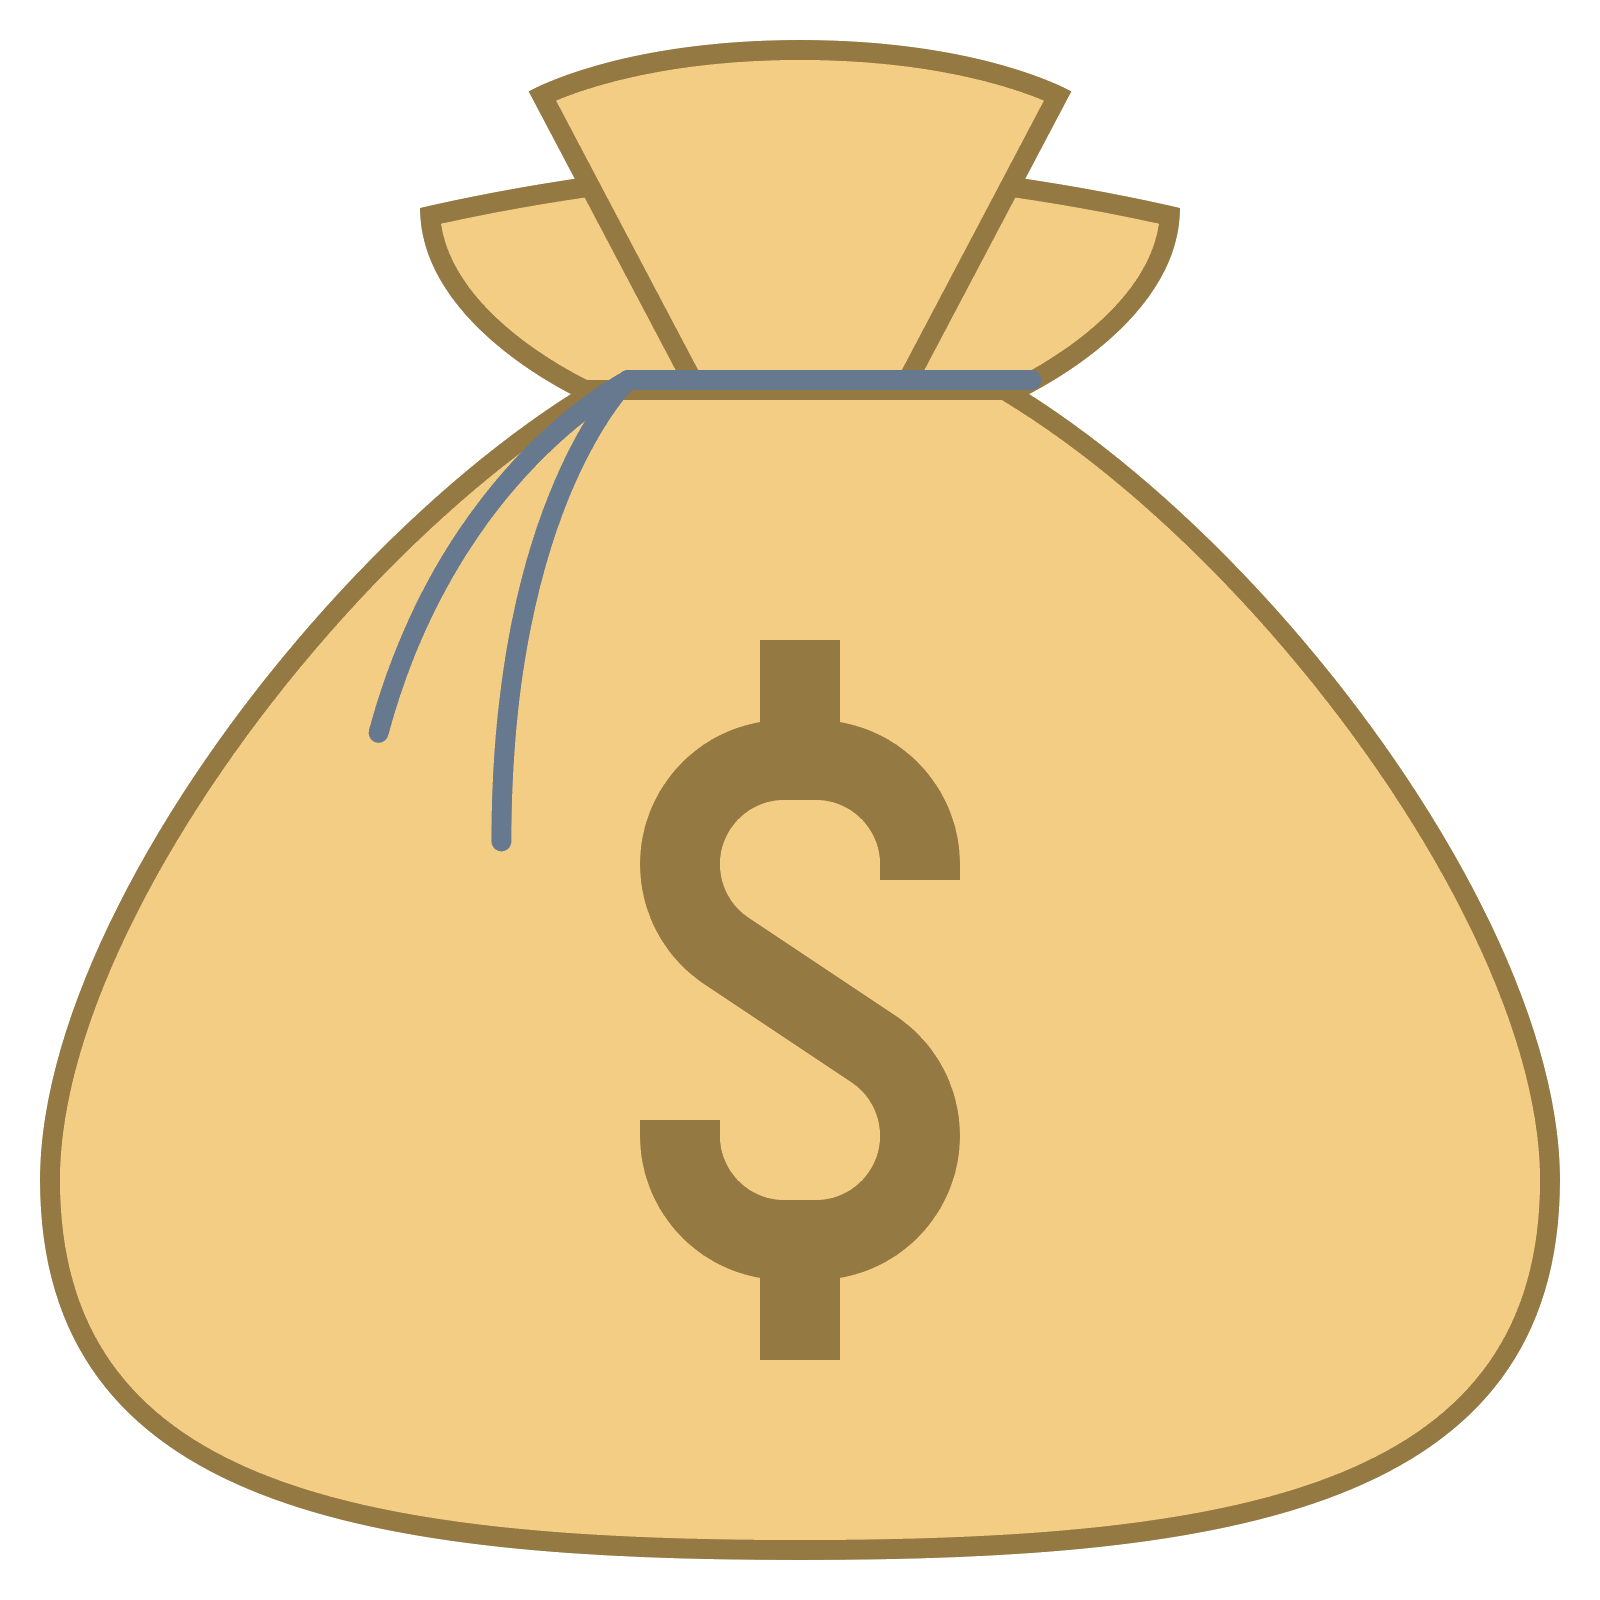 Emojis drawing money bag. Computer icons clip art